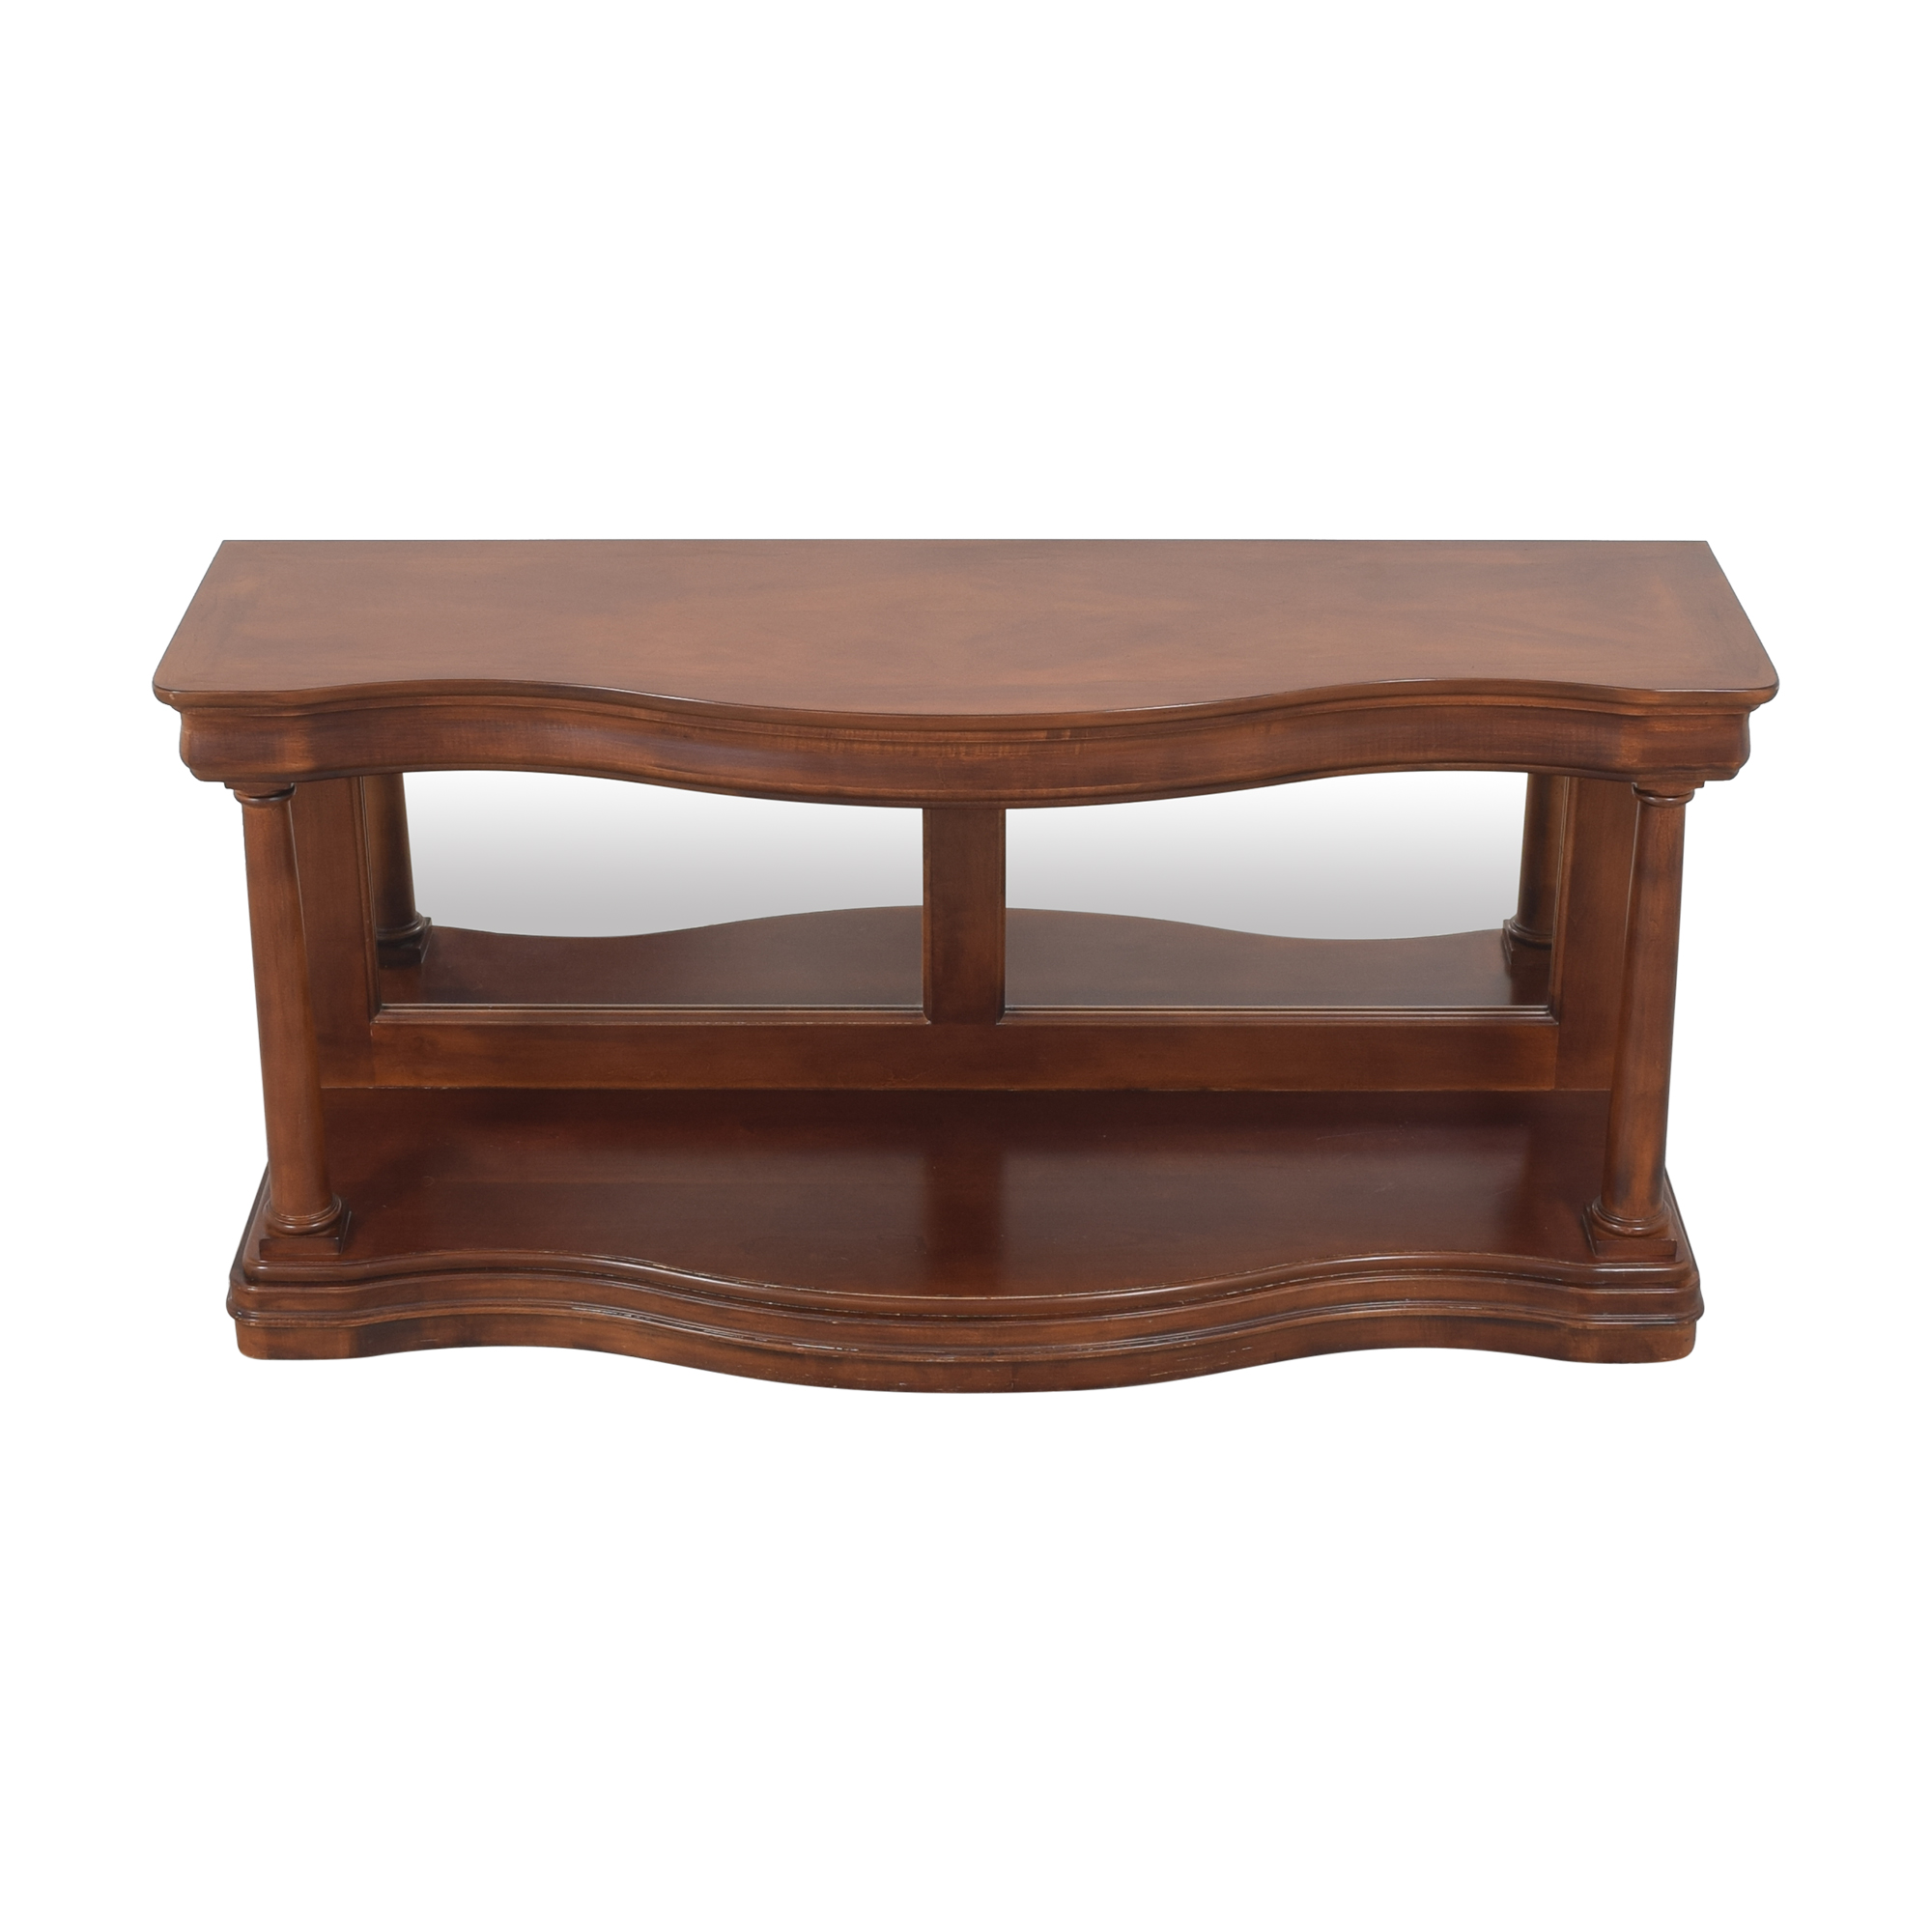 Drexel Heritage Drexel Heritage Mirrored Accent Table brown